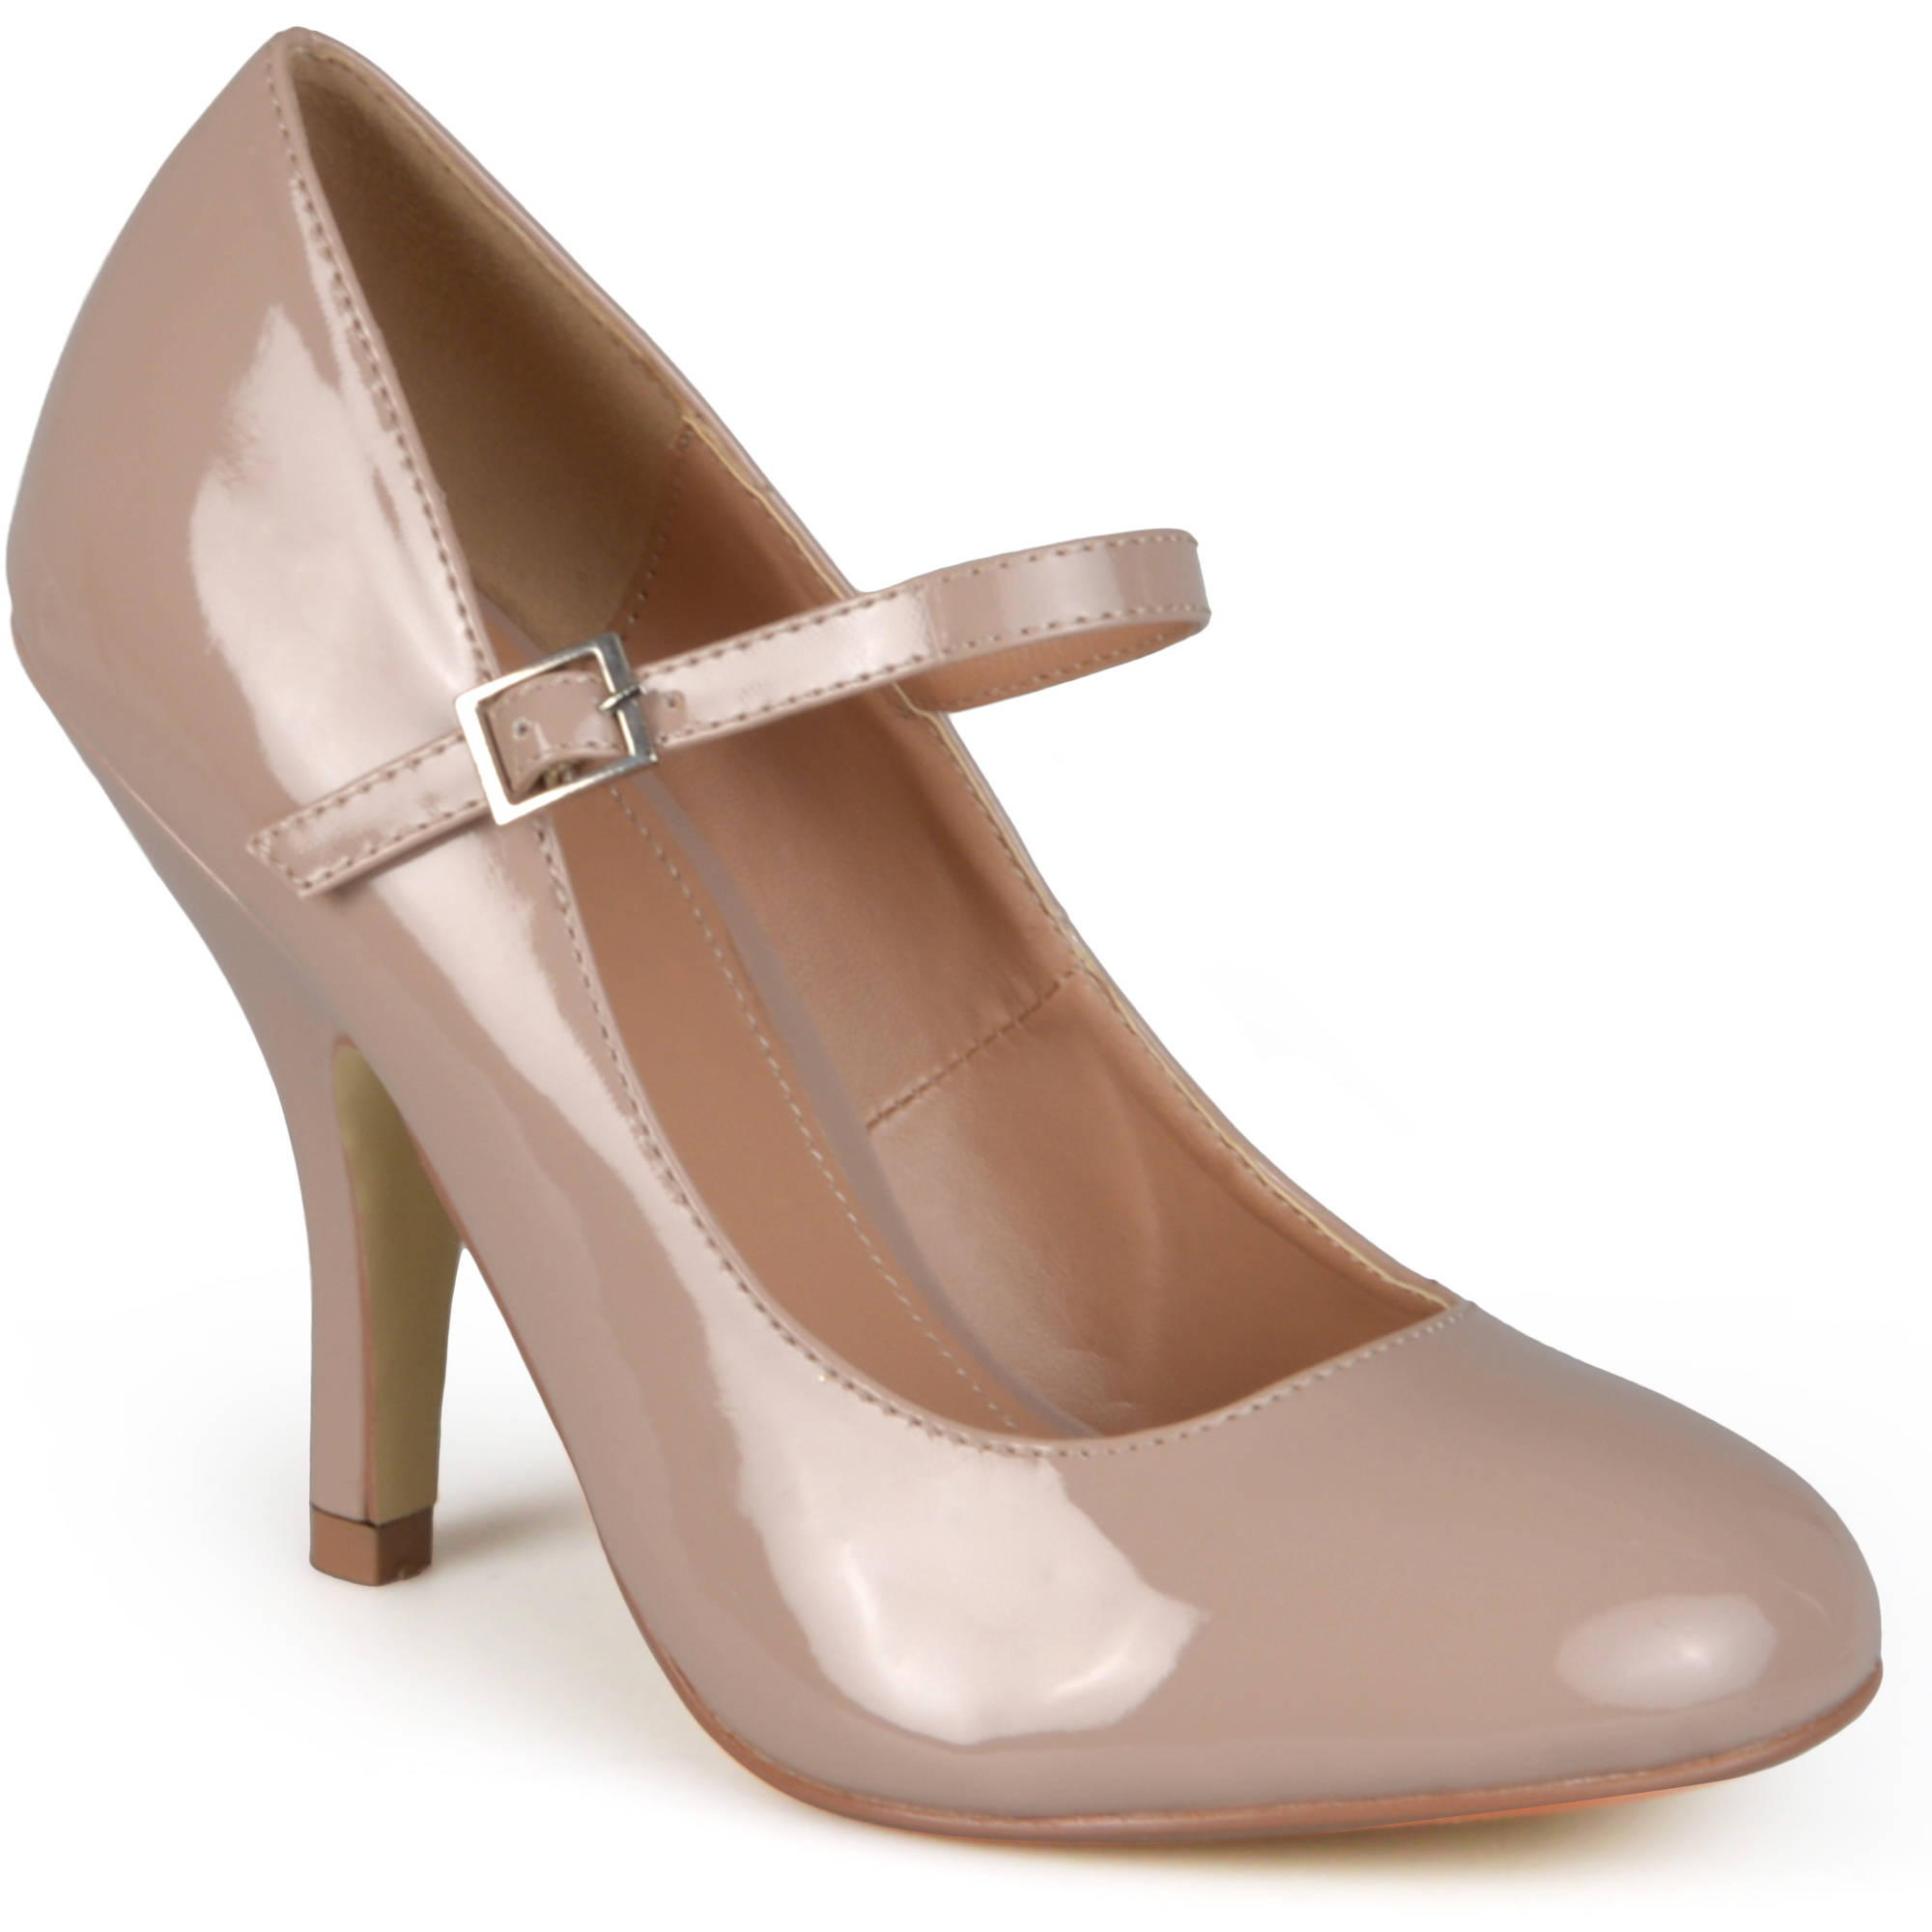 Brinley Co Women's Patent Round Toe Mary Jane Pumps